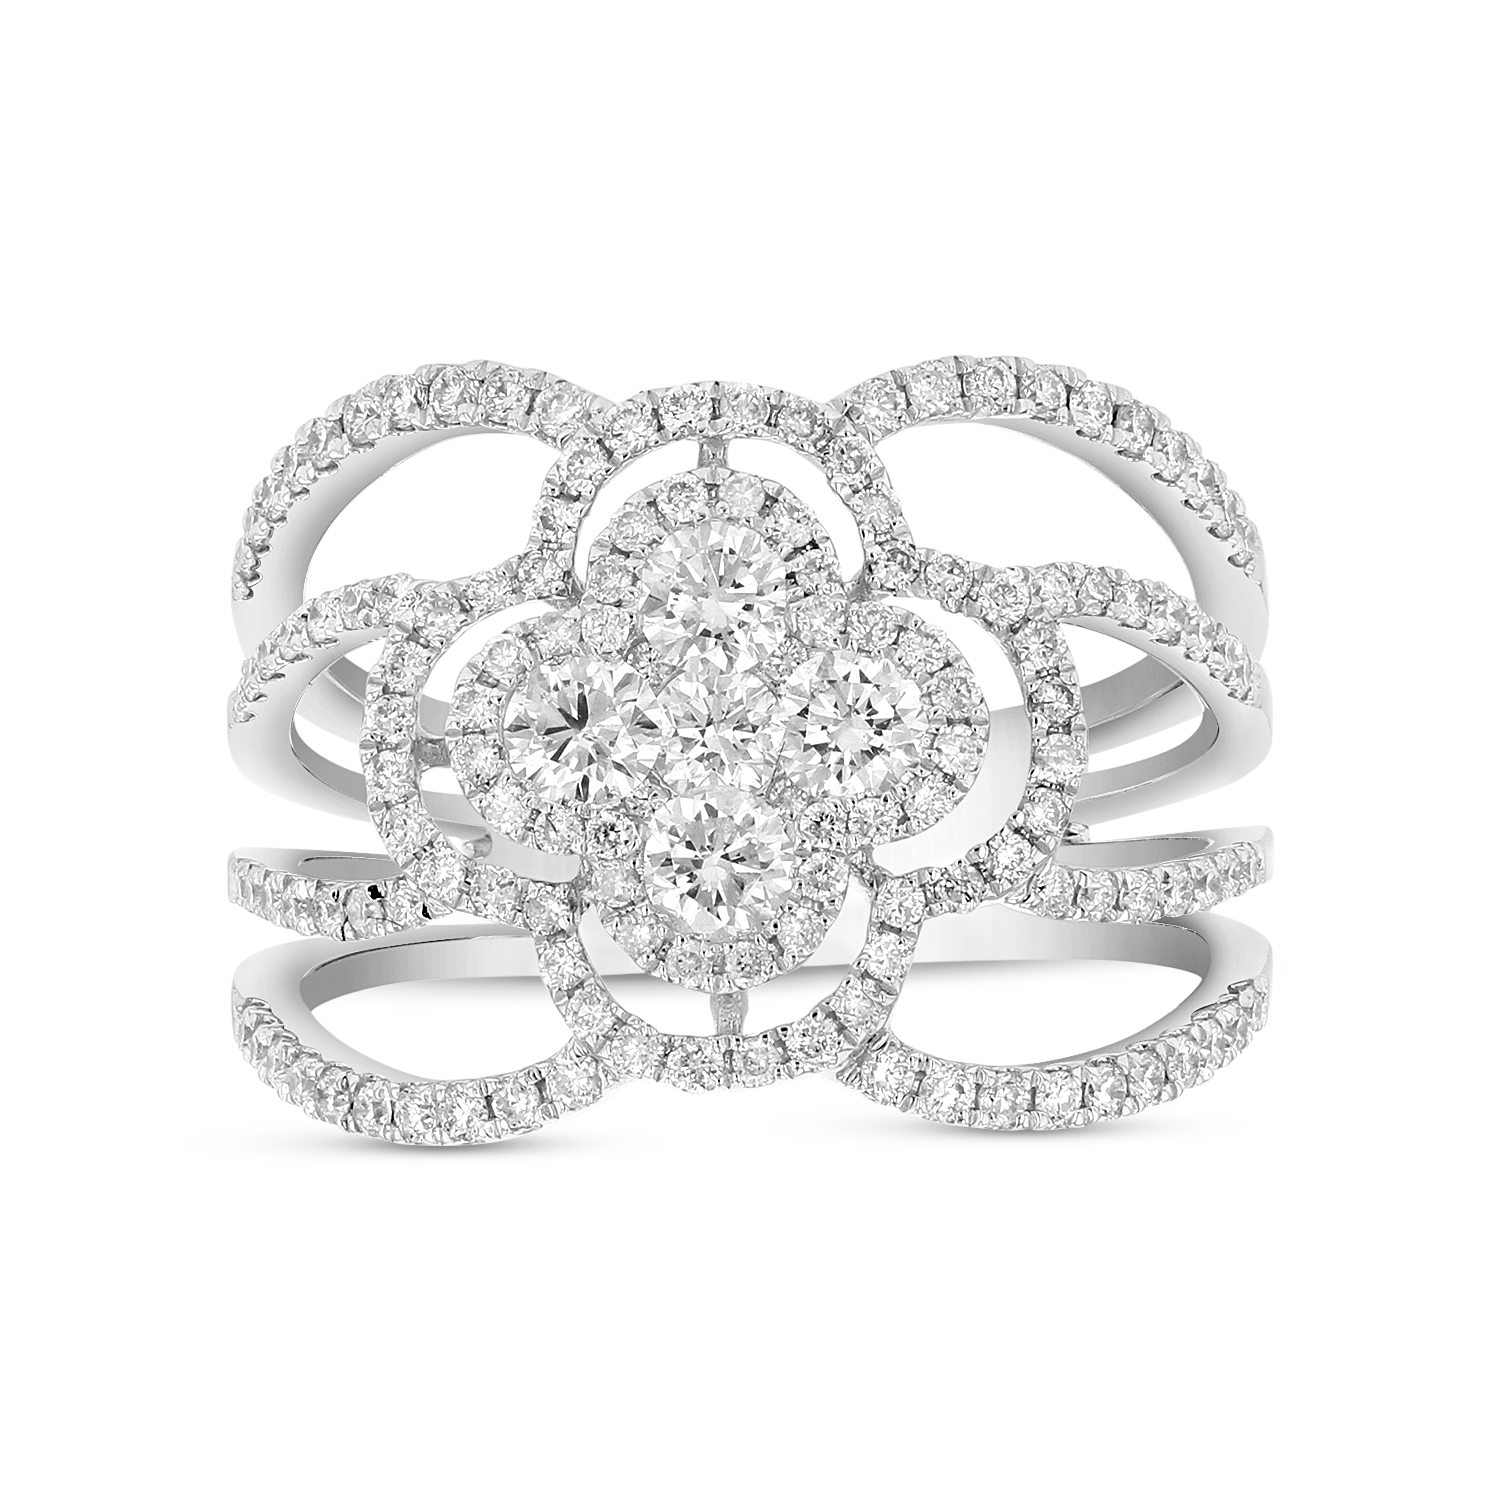 View 1.05ctw Diamond Clover Fashion Ring in 18k White Gold